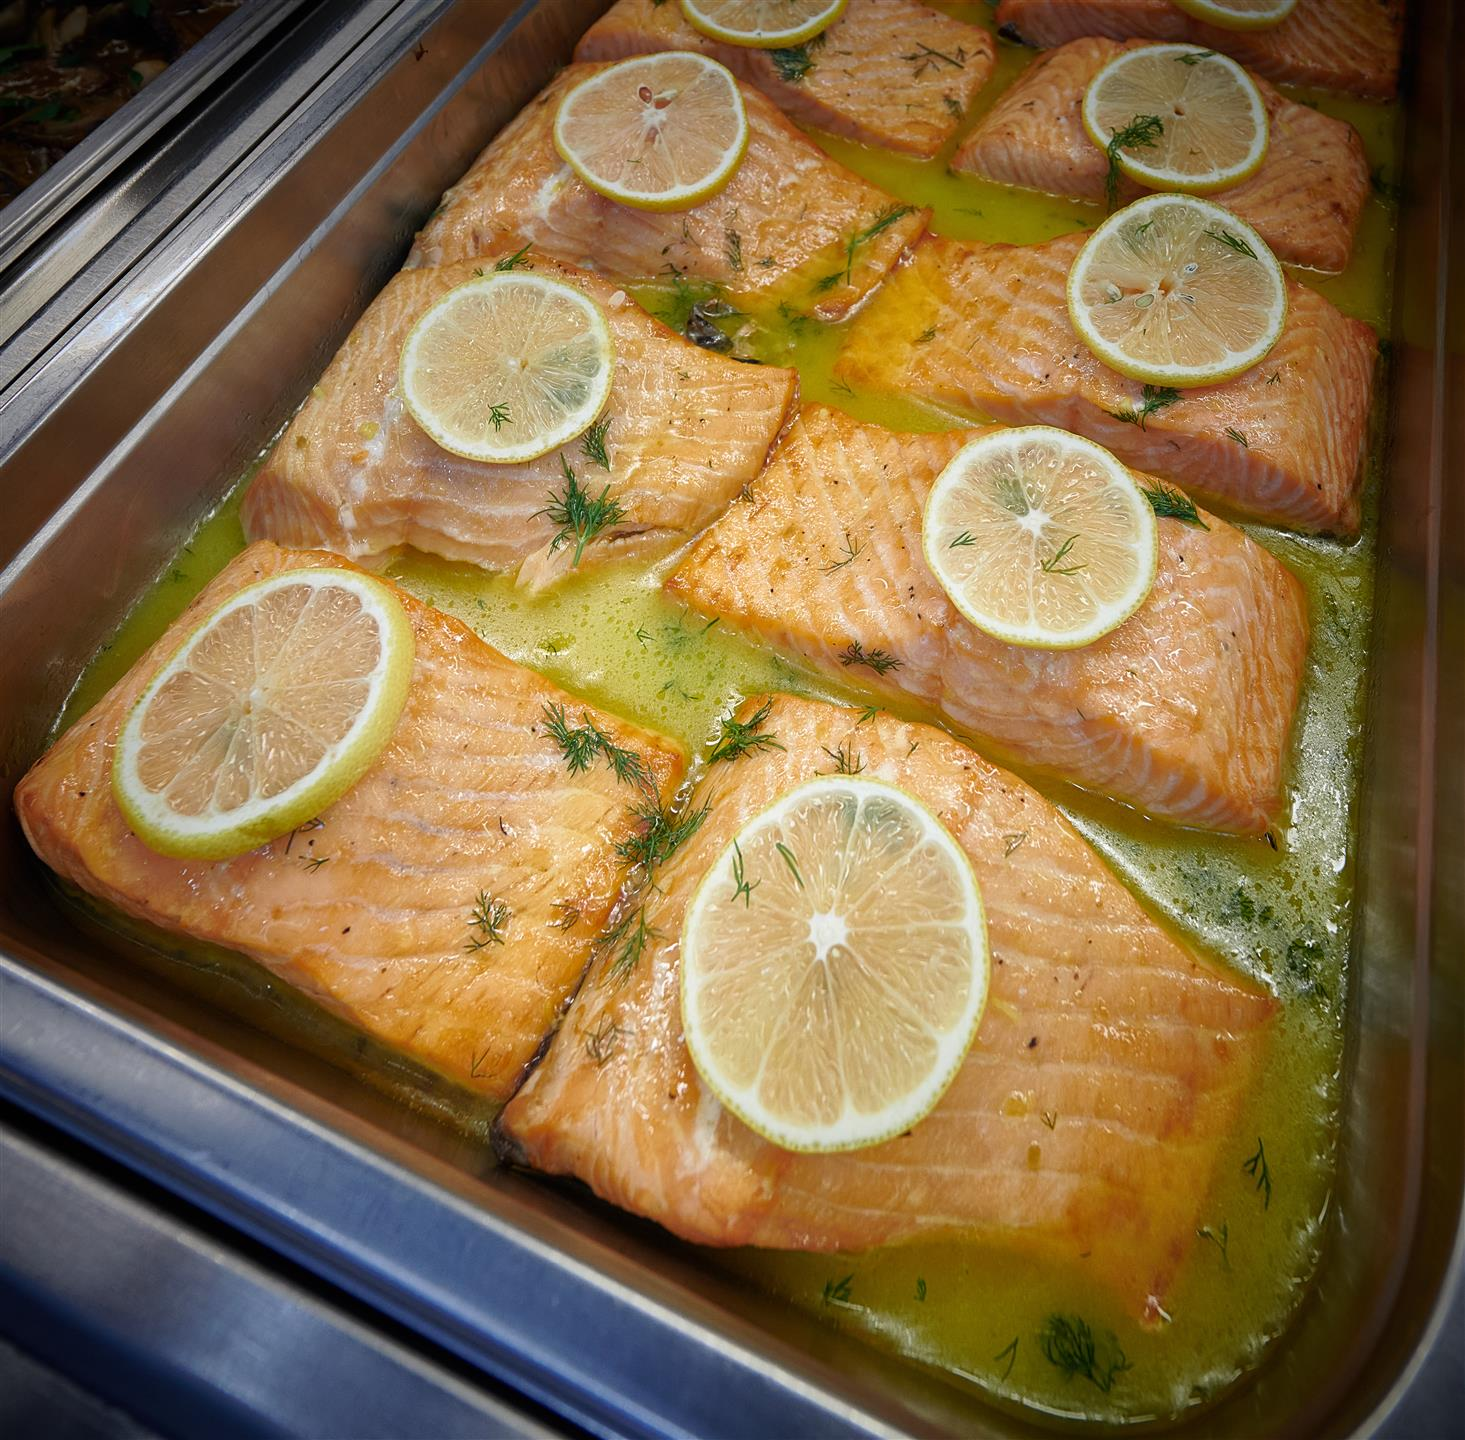 assortment of grilled salmon topped with lemon slices in a tray